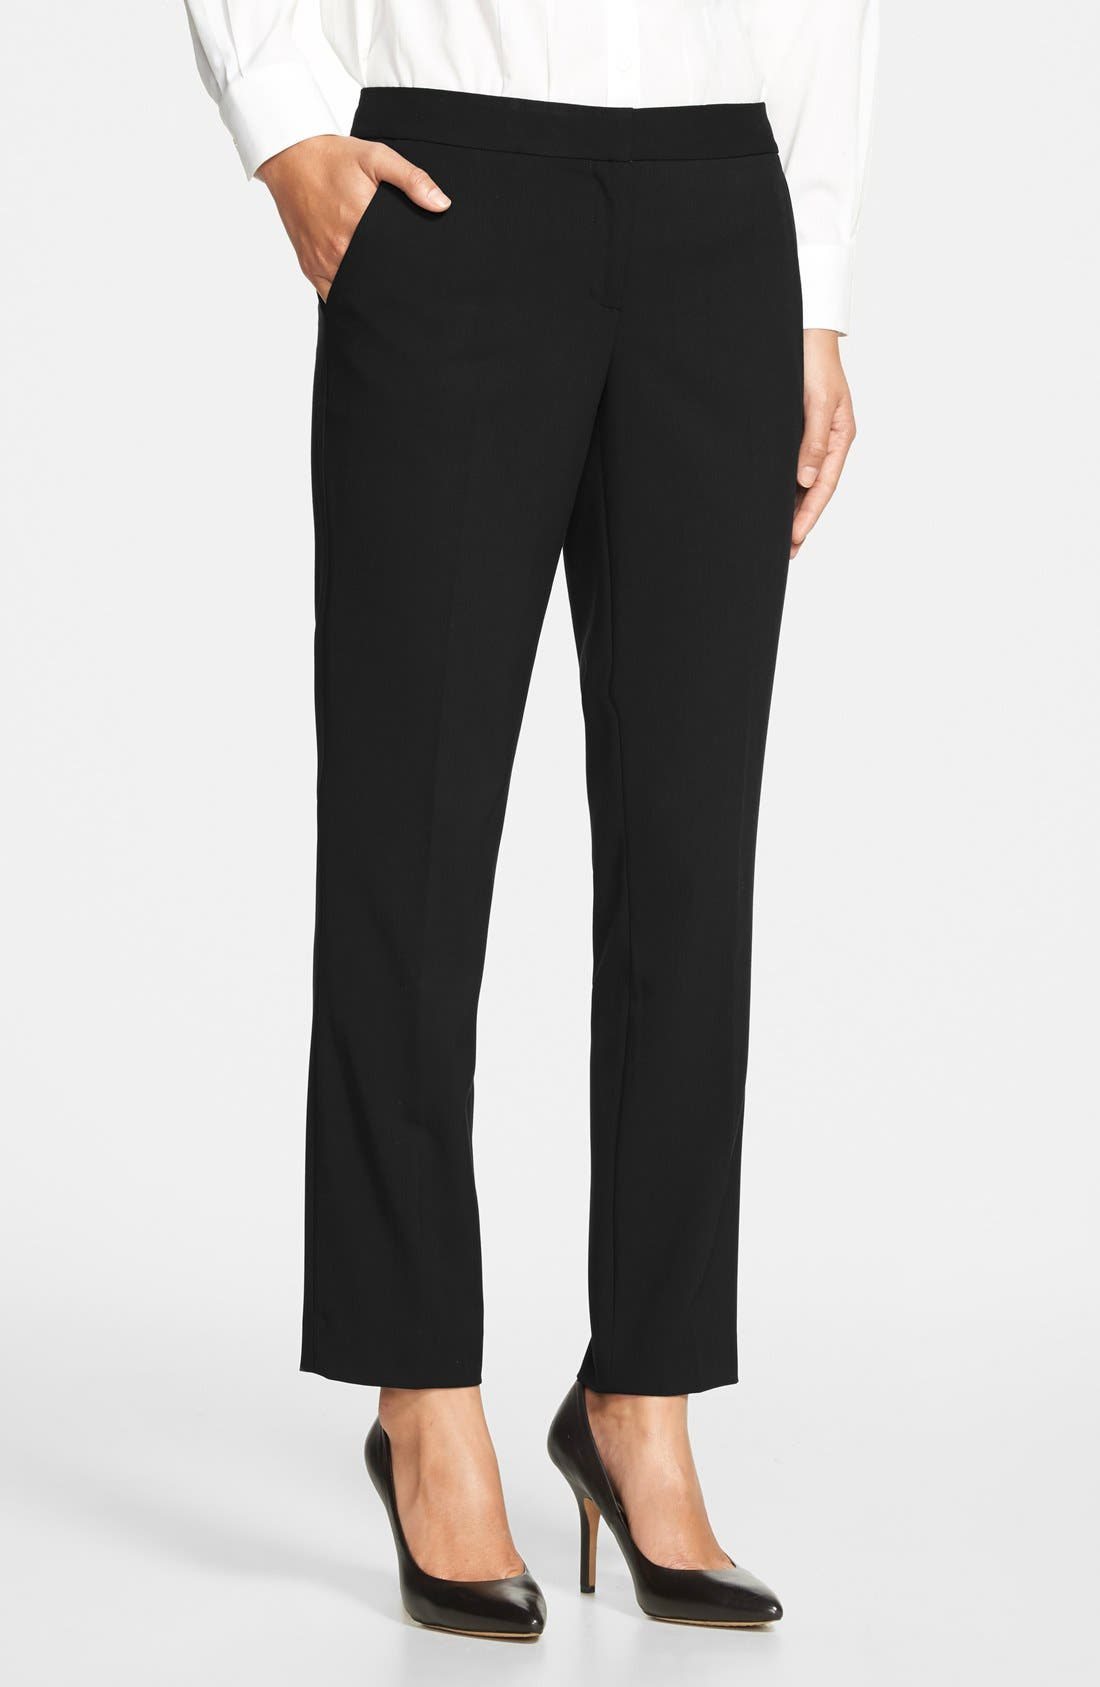 Alternate Image 1 Selected - Vince Camuto Skinny Ankle Pants